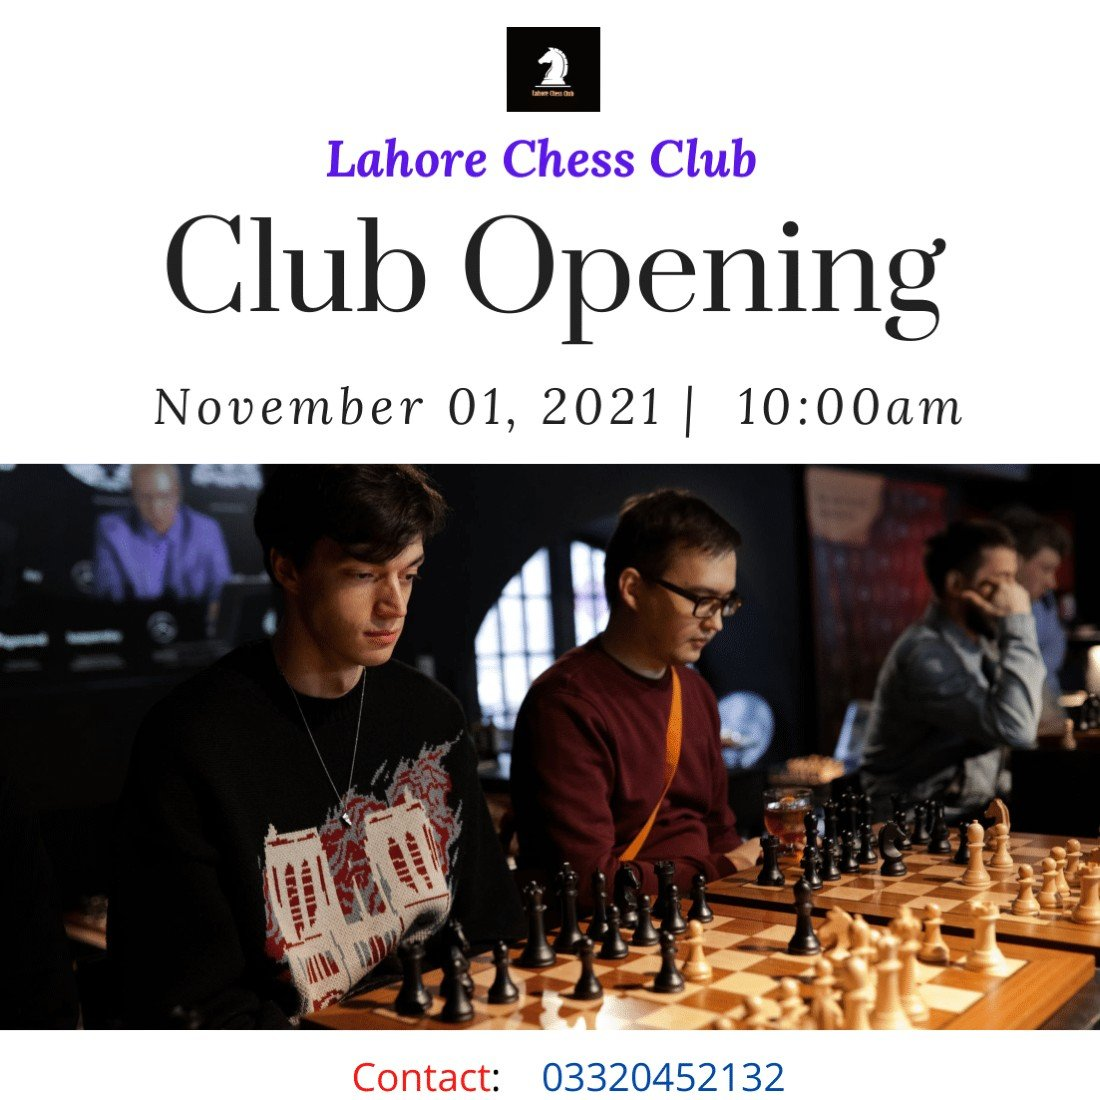 Lahore Chess Club : Club Opening Ceremony, 1 November | Event in Lahore | AllEvents.in